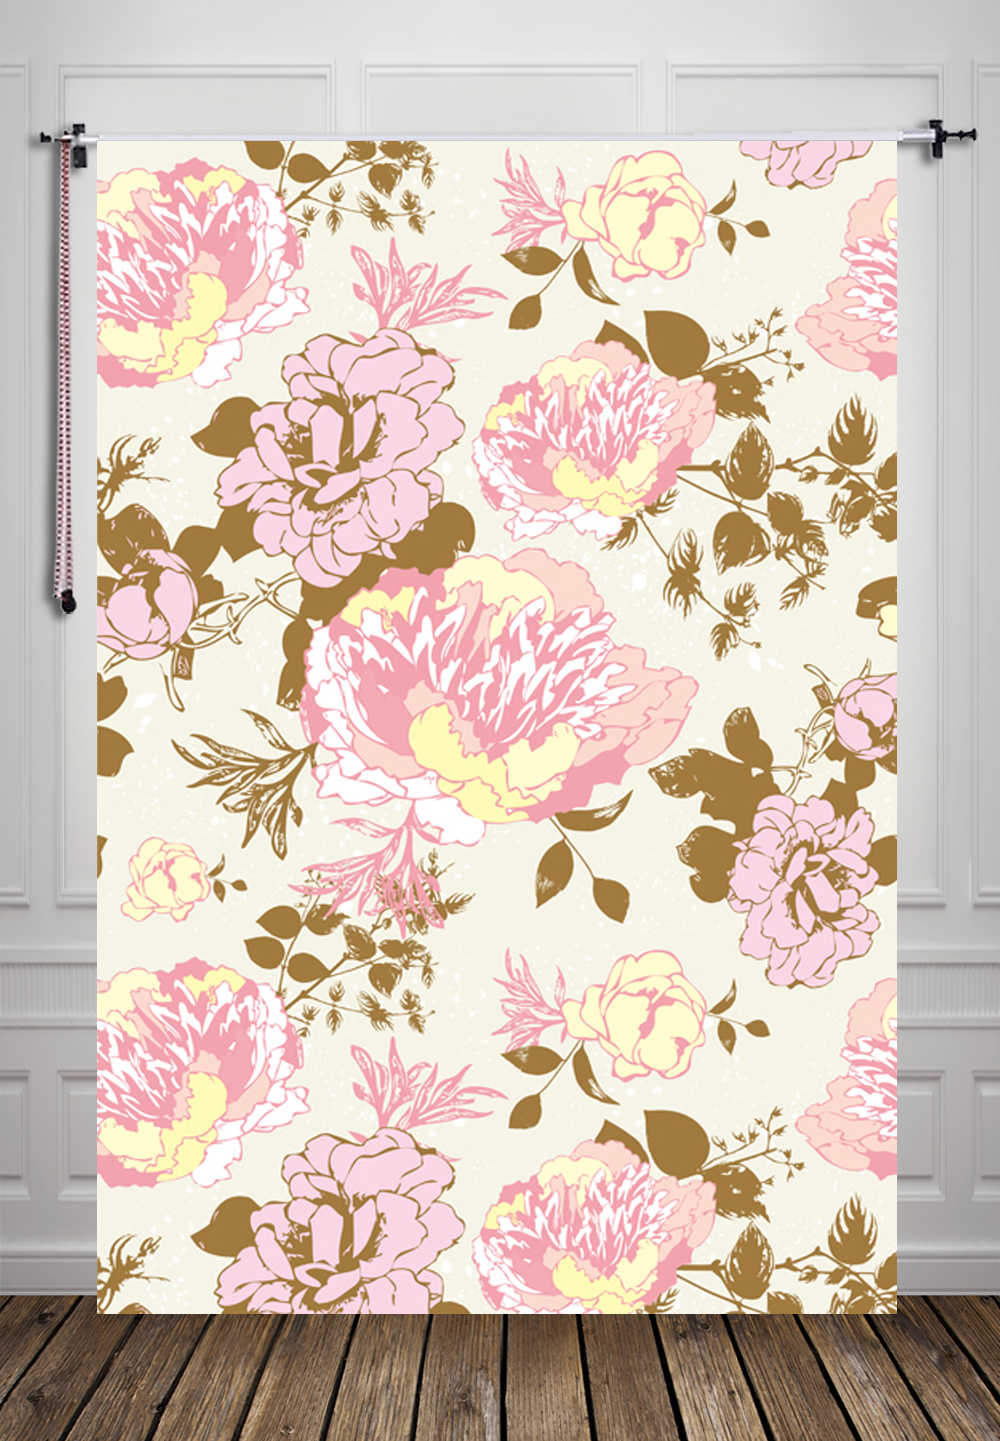 Huayi Shabby Chic Floral Backdrop For Photography Pink Flowers